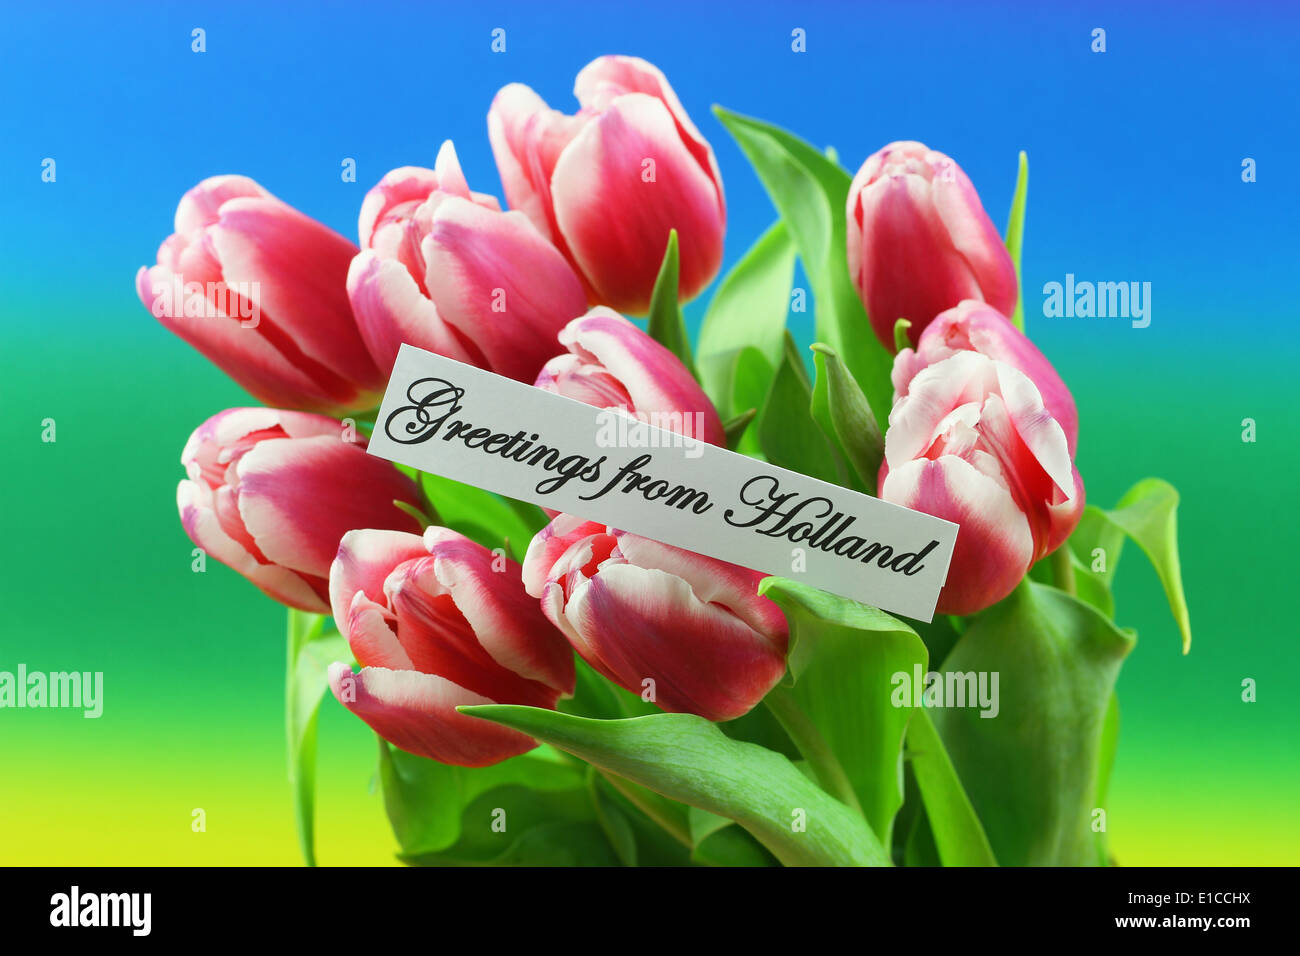 Greetings from holland card with pink tulips on colorful background greetings from holland card with pink tulips on colorful background m4hsunfo